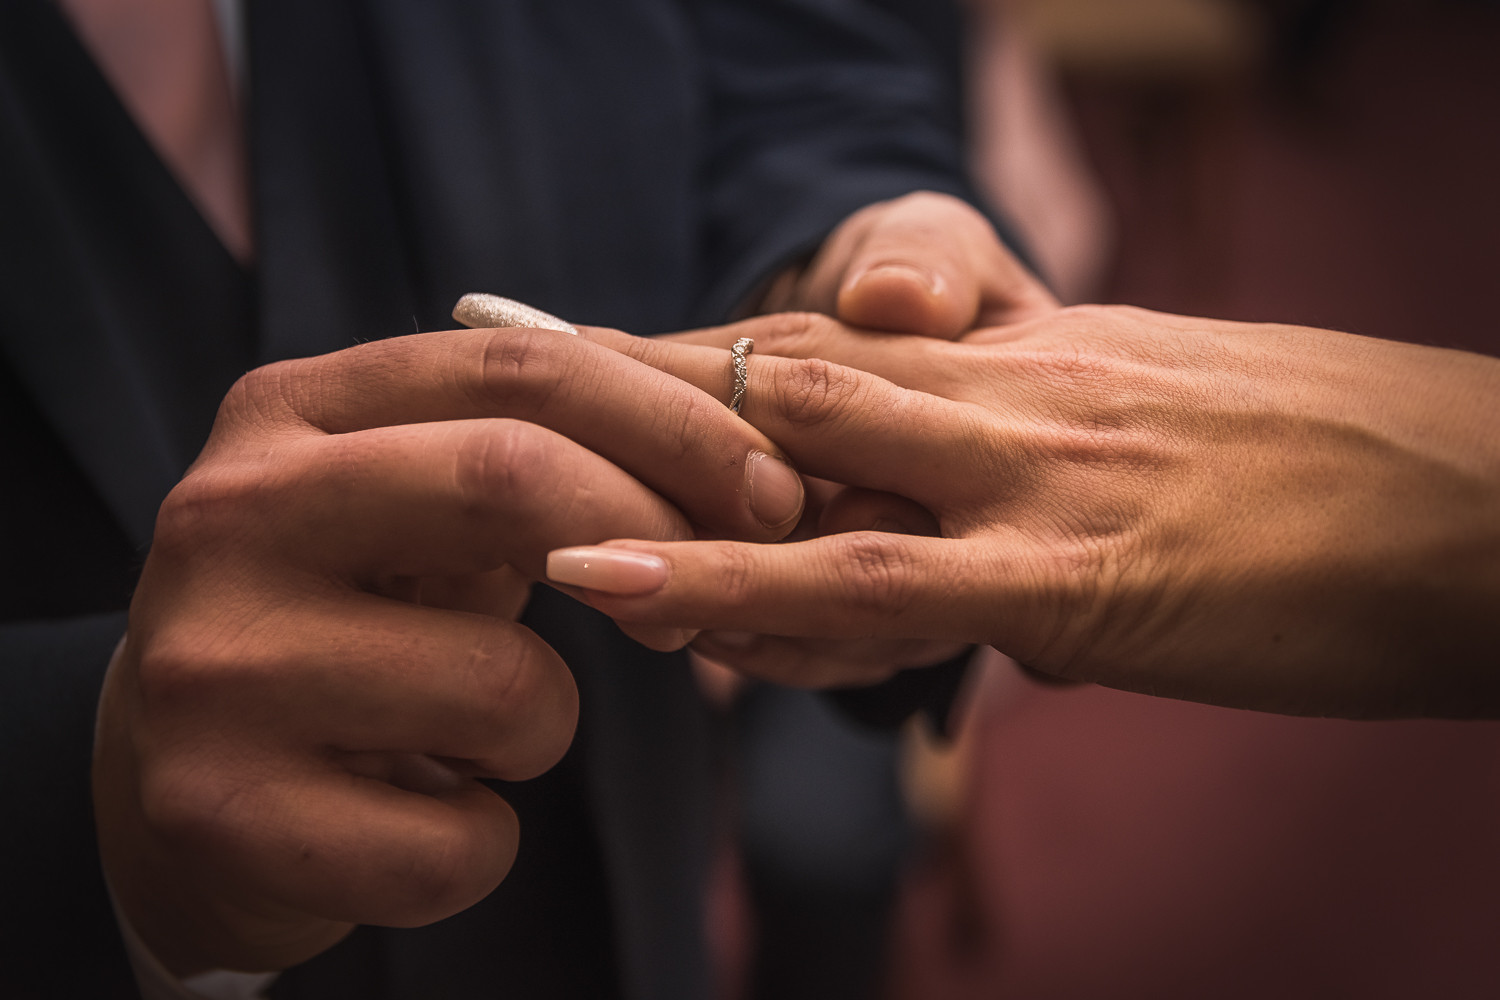 A groom places a bride's wedding ring on her hand during a wedding ceremony at Beverley Registry Office.